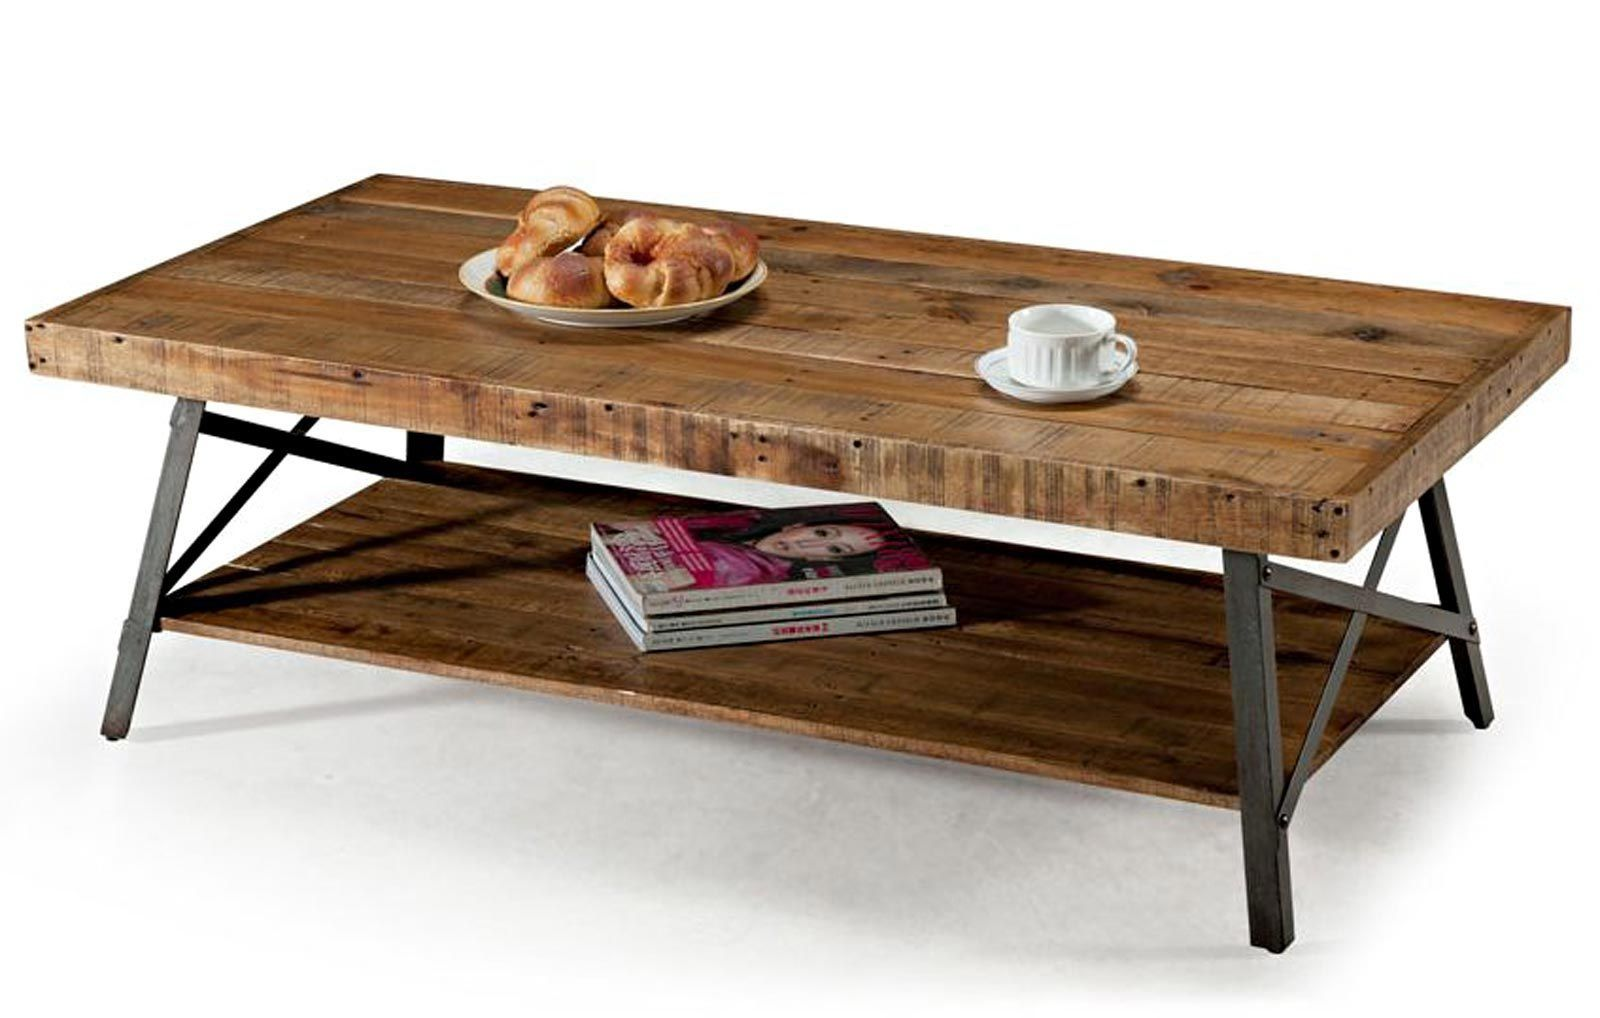 Coffee Table, Diy Industrial Coffee Table With Plumbing Pipe Base Rustic  Industrial Reclaimed Wood Iron Metal Coffee Cocktail Table: Rustic  Industrial ...